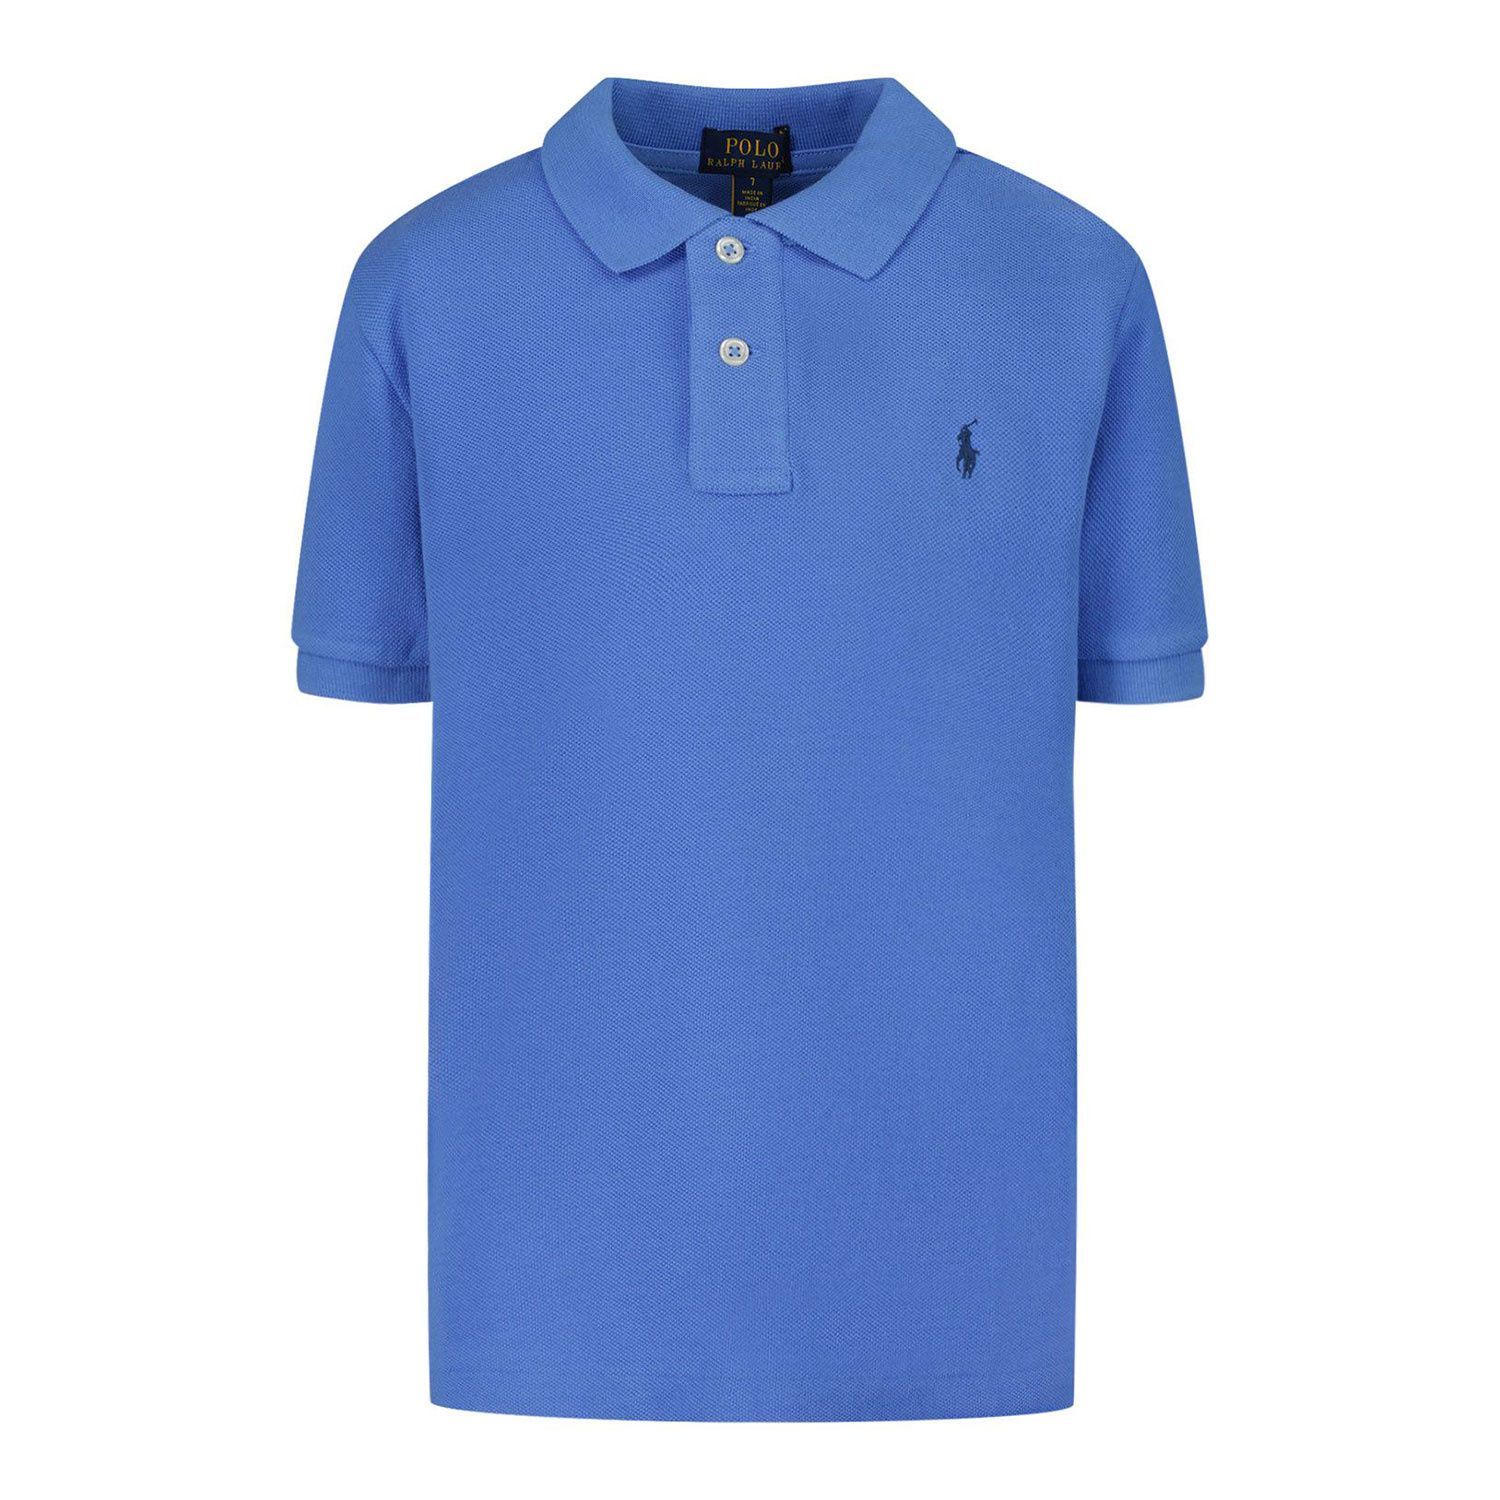 Picture of Ralph Lauren 603252 kids polo shirt blue